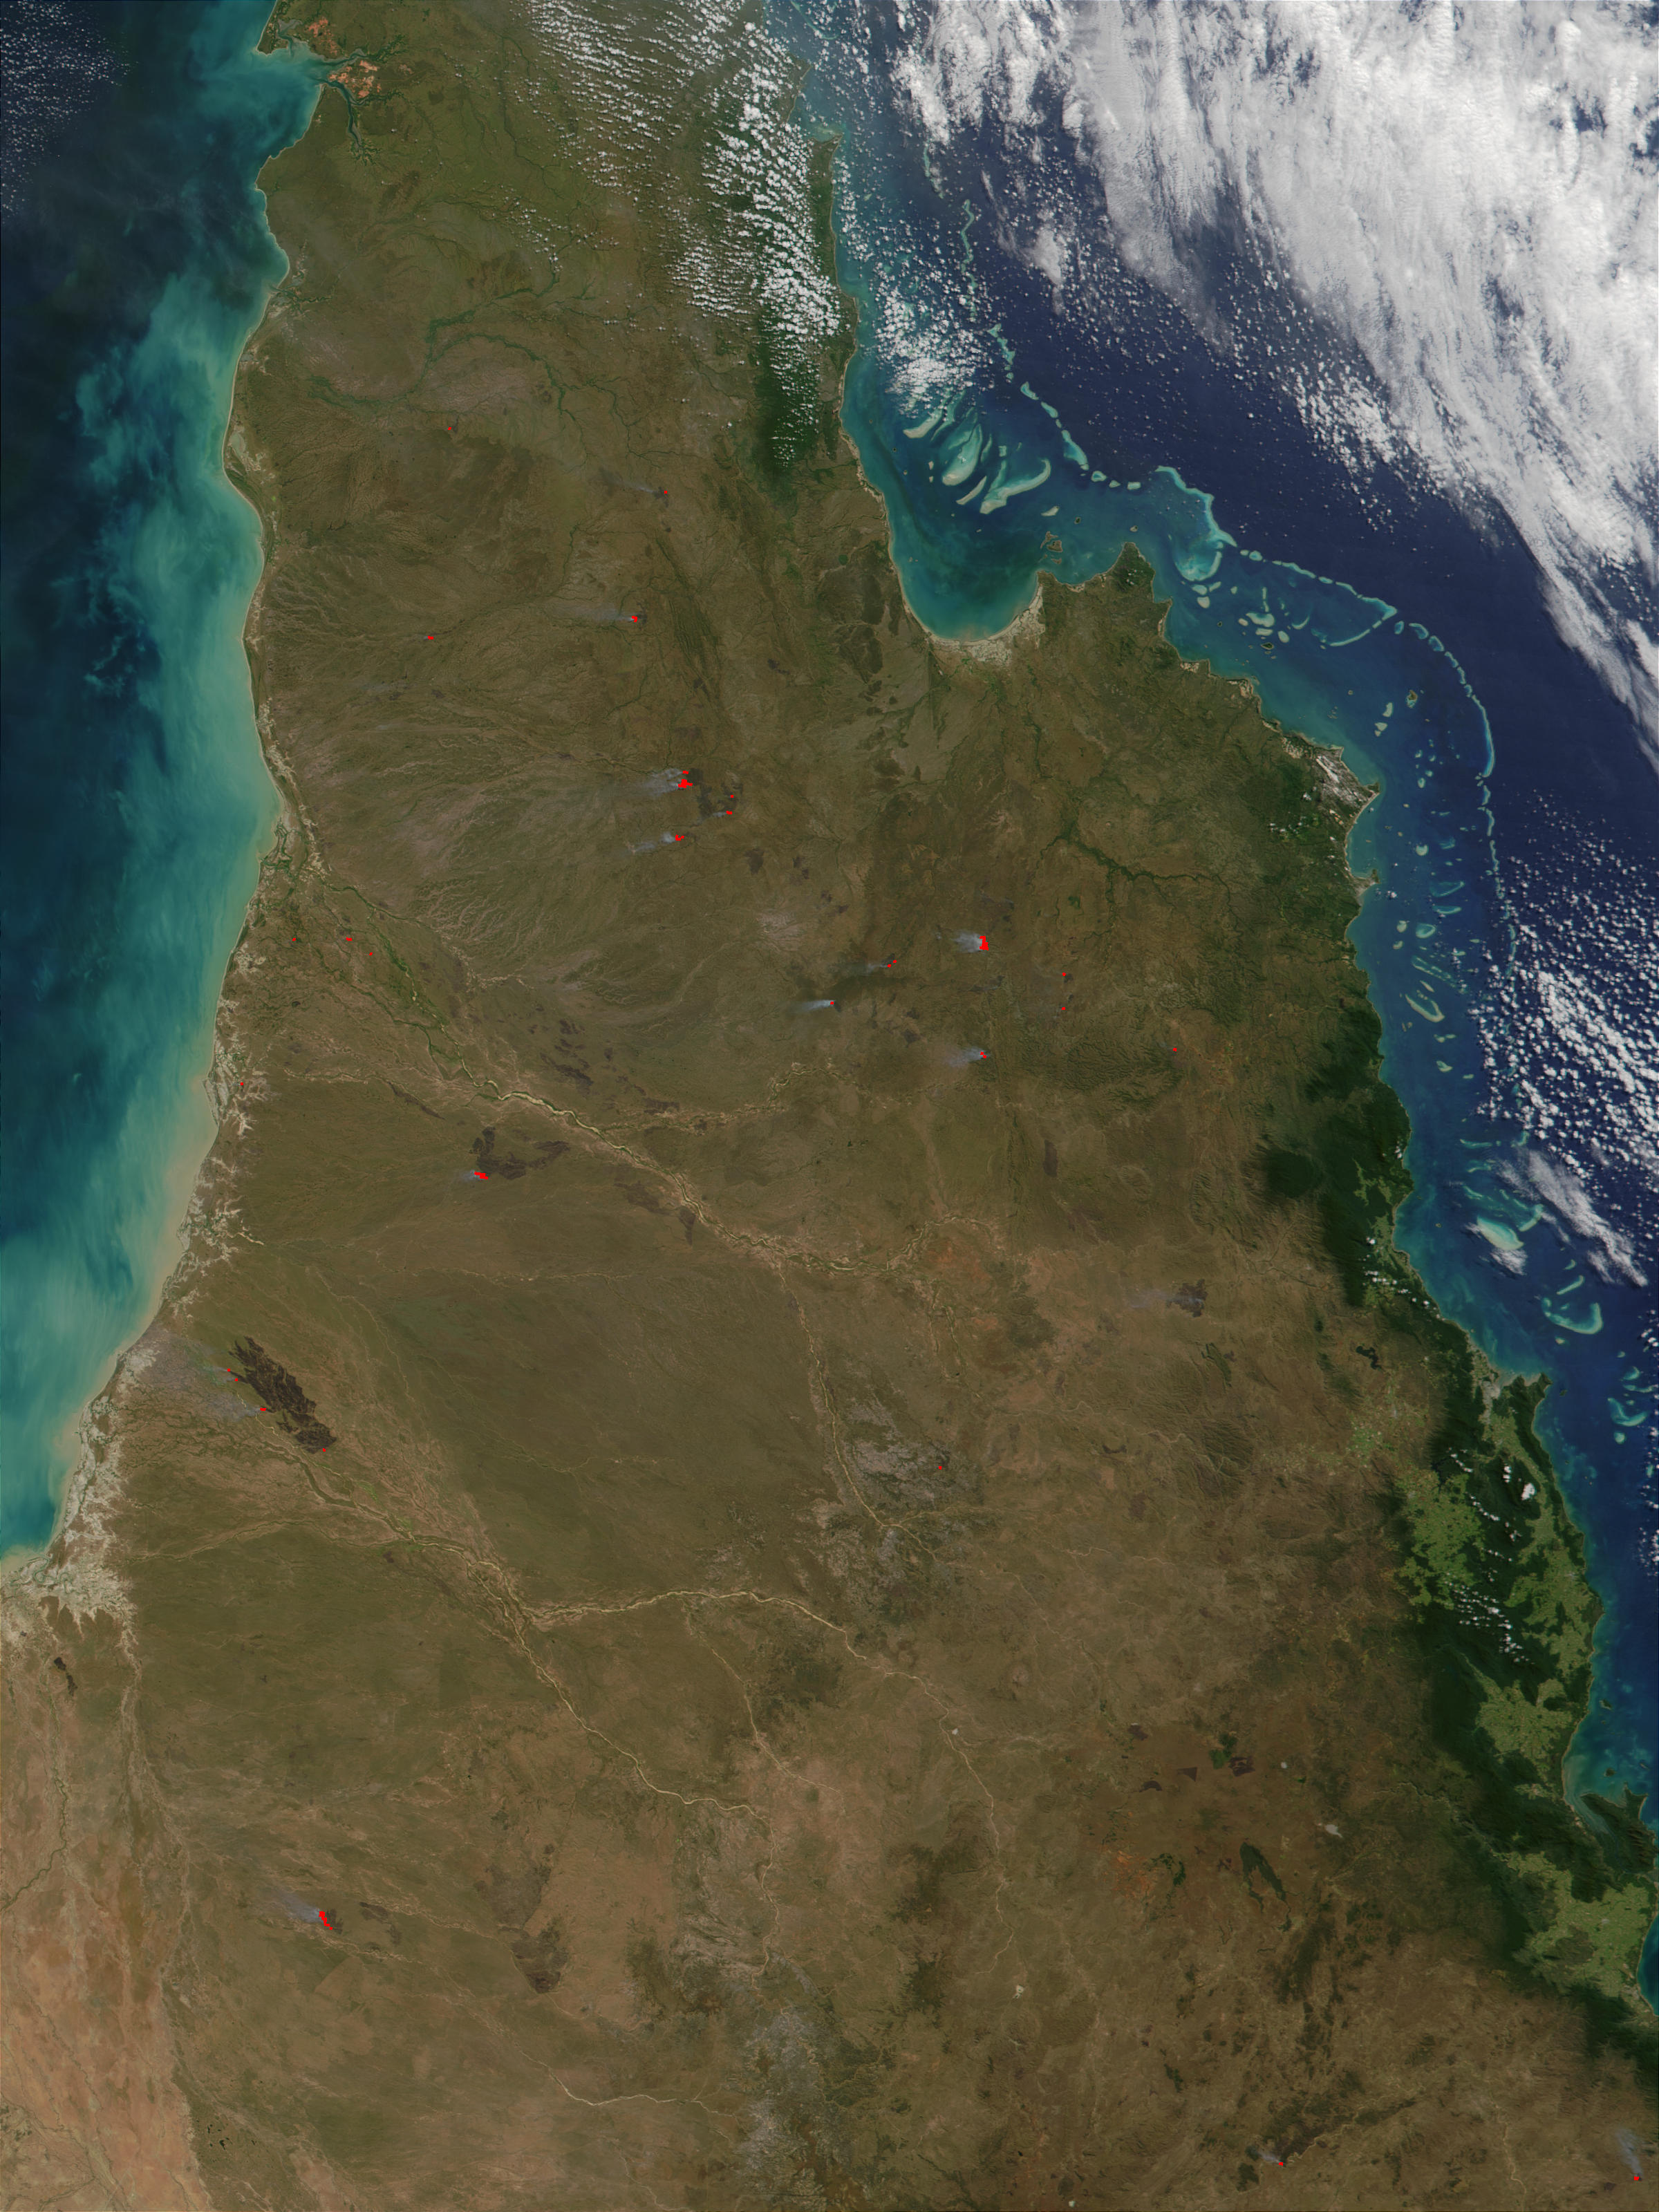 Fires in Cape York Peninsula, Queensland, Australia - related image preview